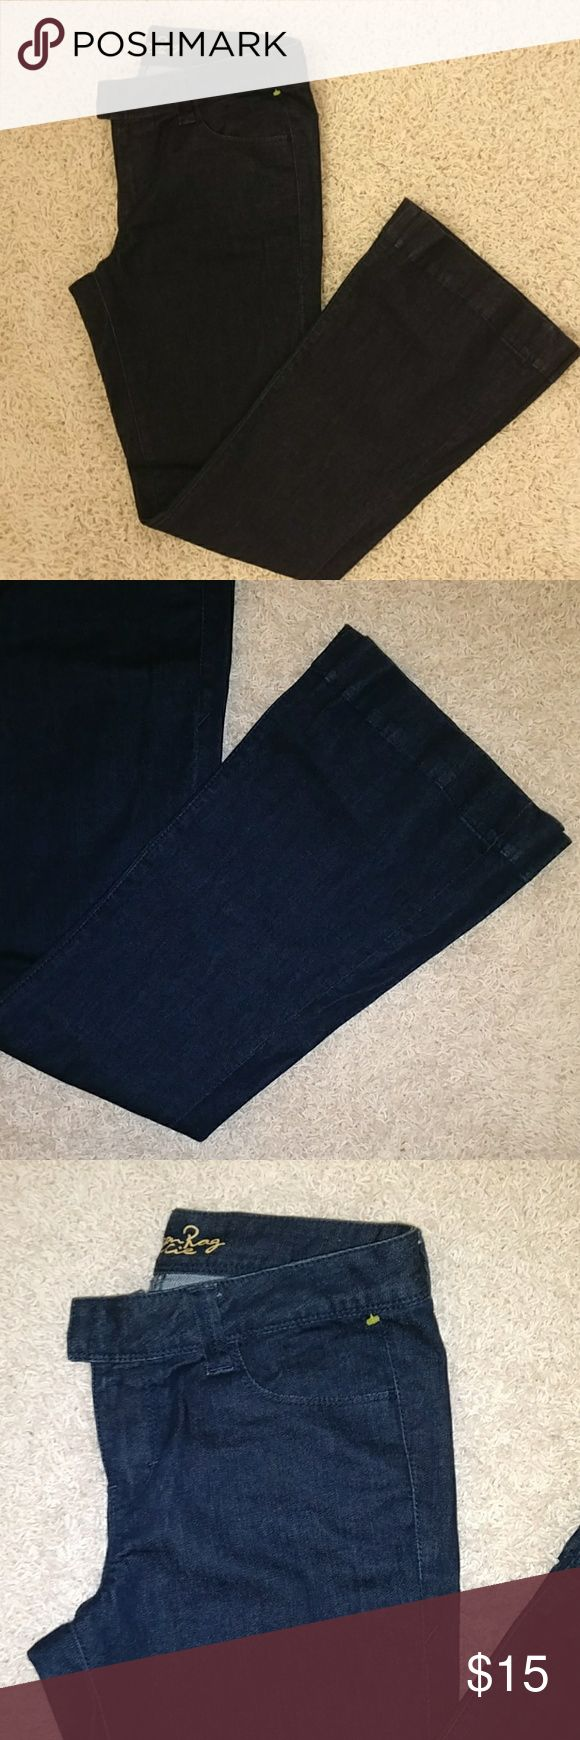 American Rag jeans Jeans have a bell bottom and are in like new condition. American Rag Jeans